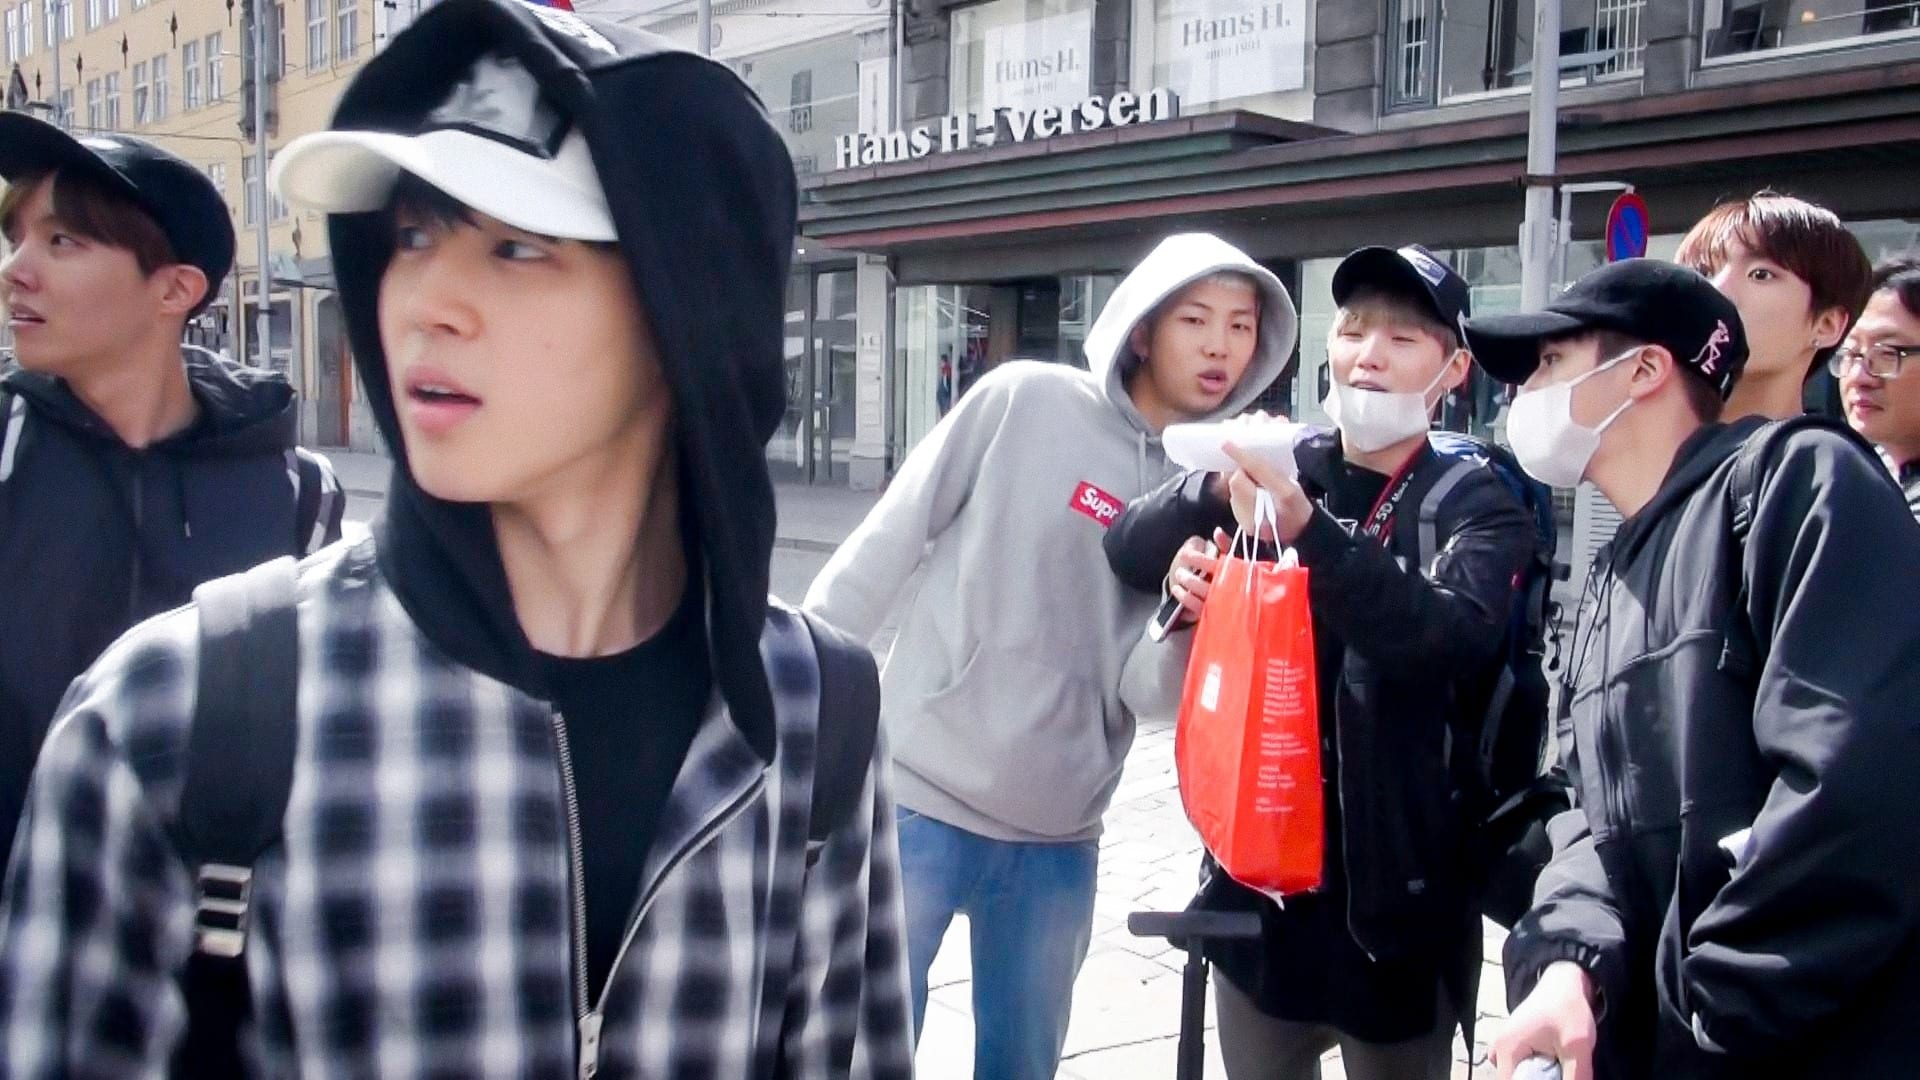 Bangtan Boys In Europe: BTS Bon Voyage Recap And Pictures